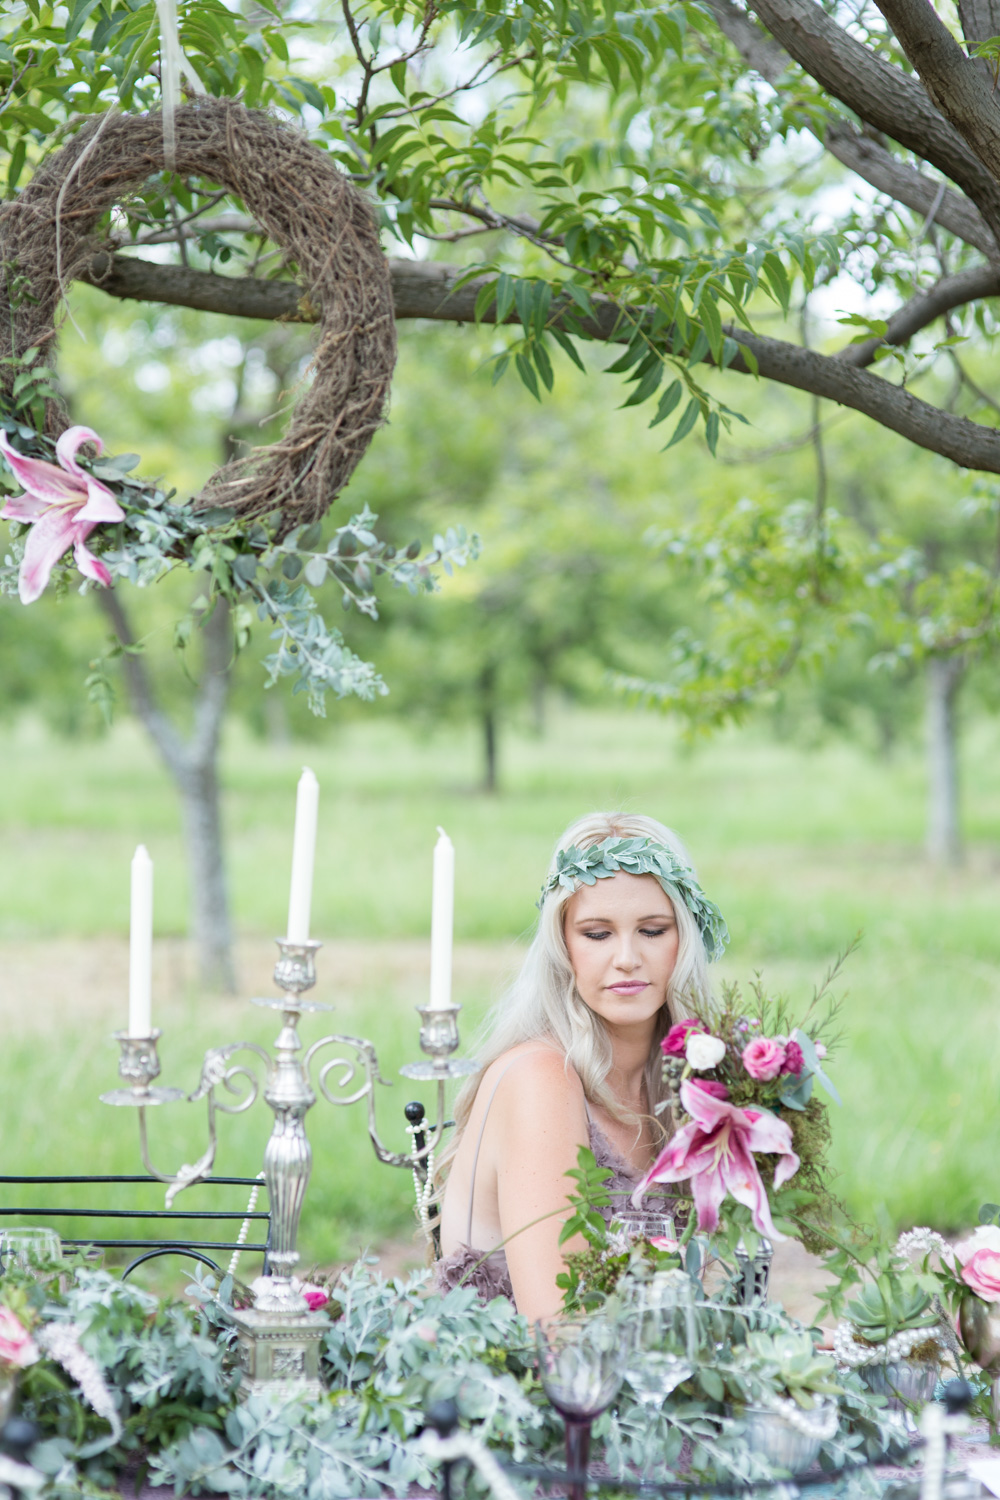 Shokran pretoria wedding venue shoot062.jpg